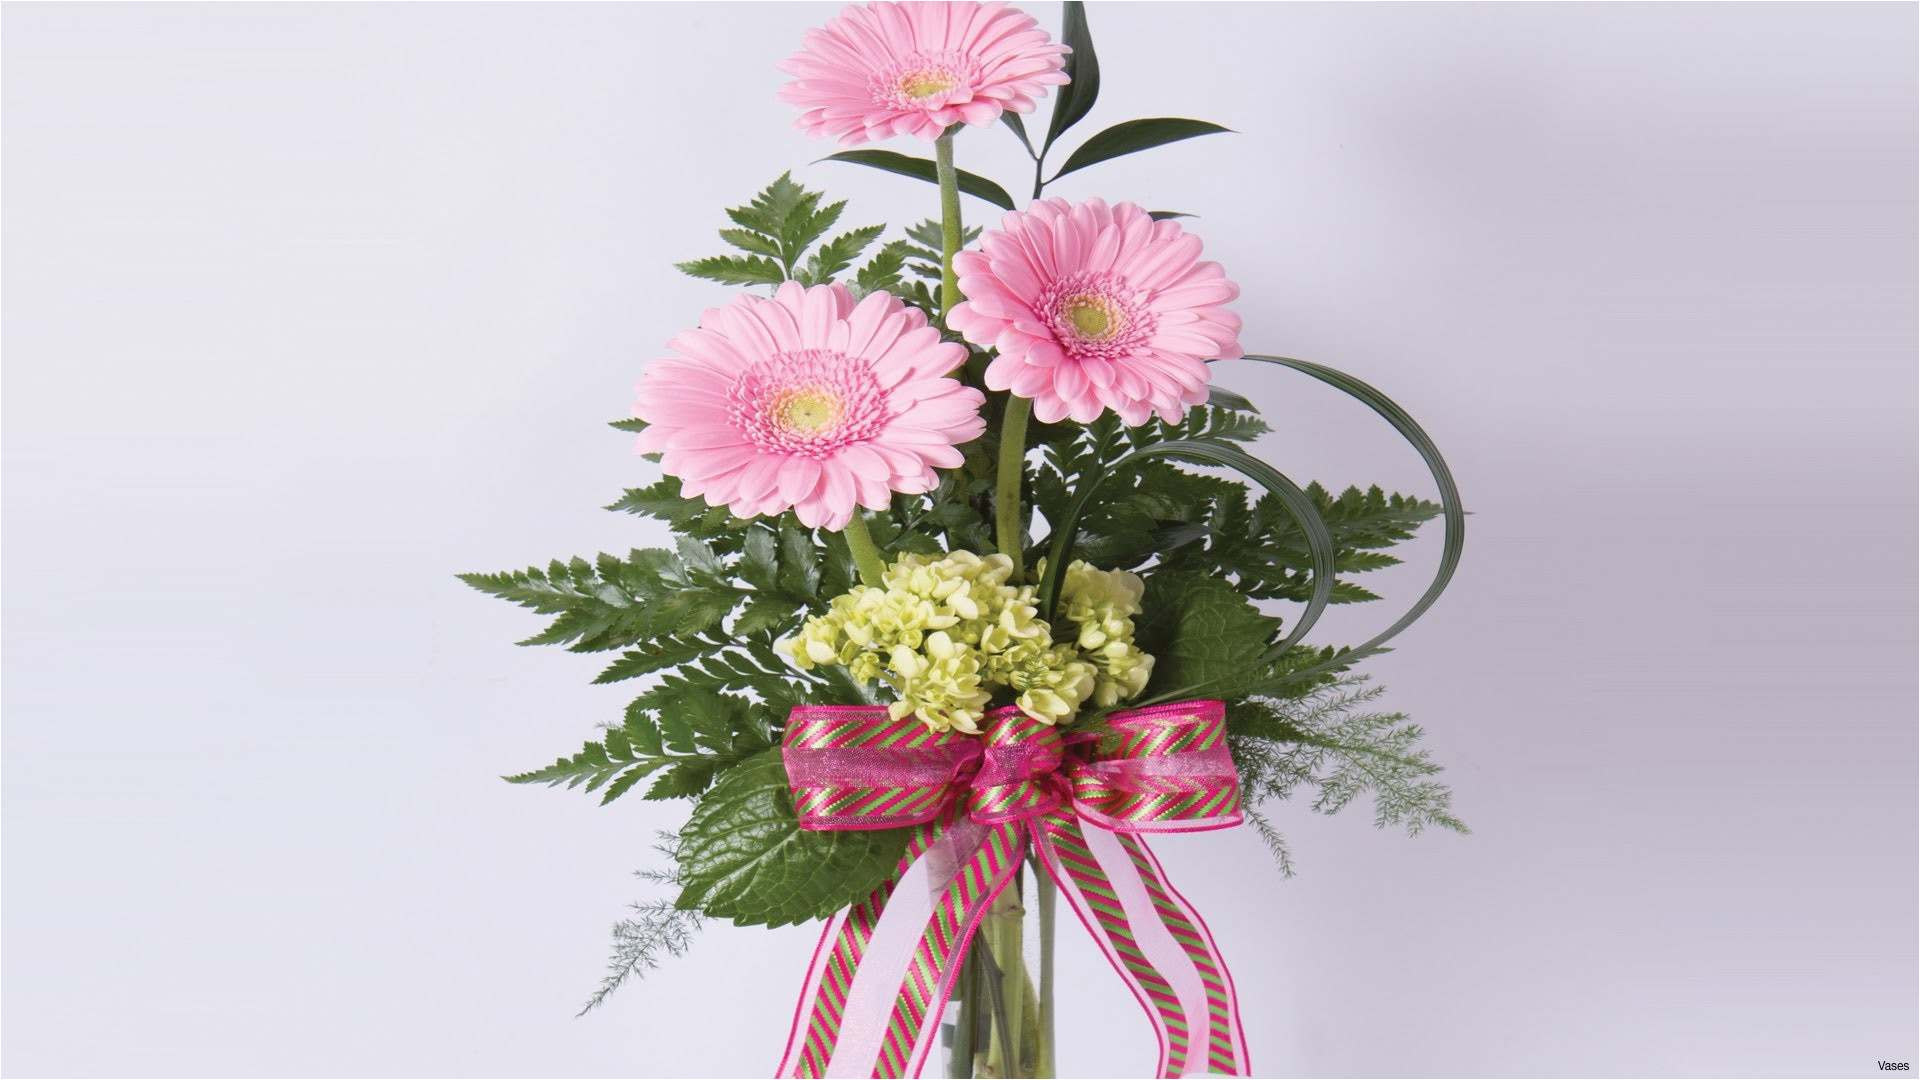 candy flower vase of flower ornaments beautiful pin by abk logo on flourish pinterest pertaining to flower ornaments for your plan h vases bud vase flower arrangements i 0d for inspiration design